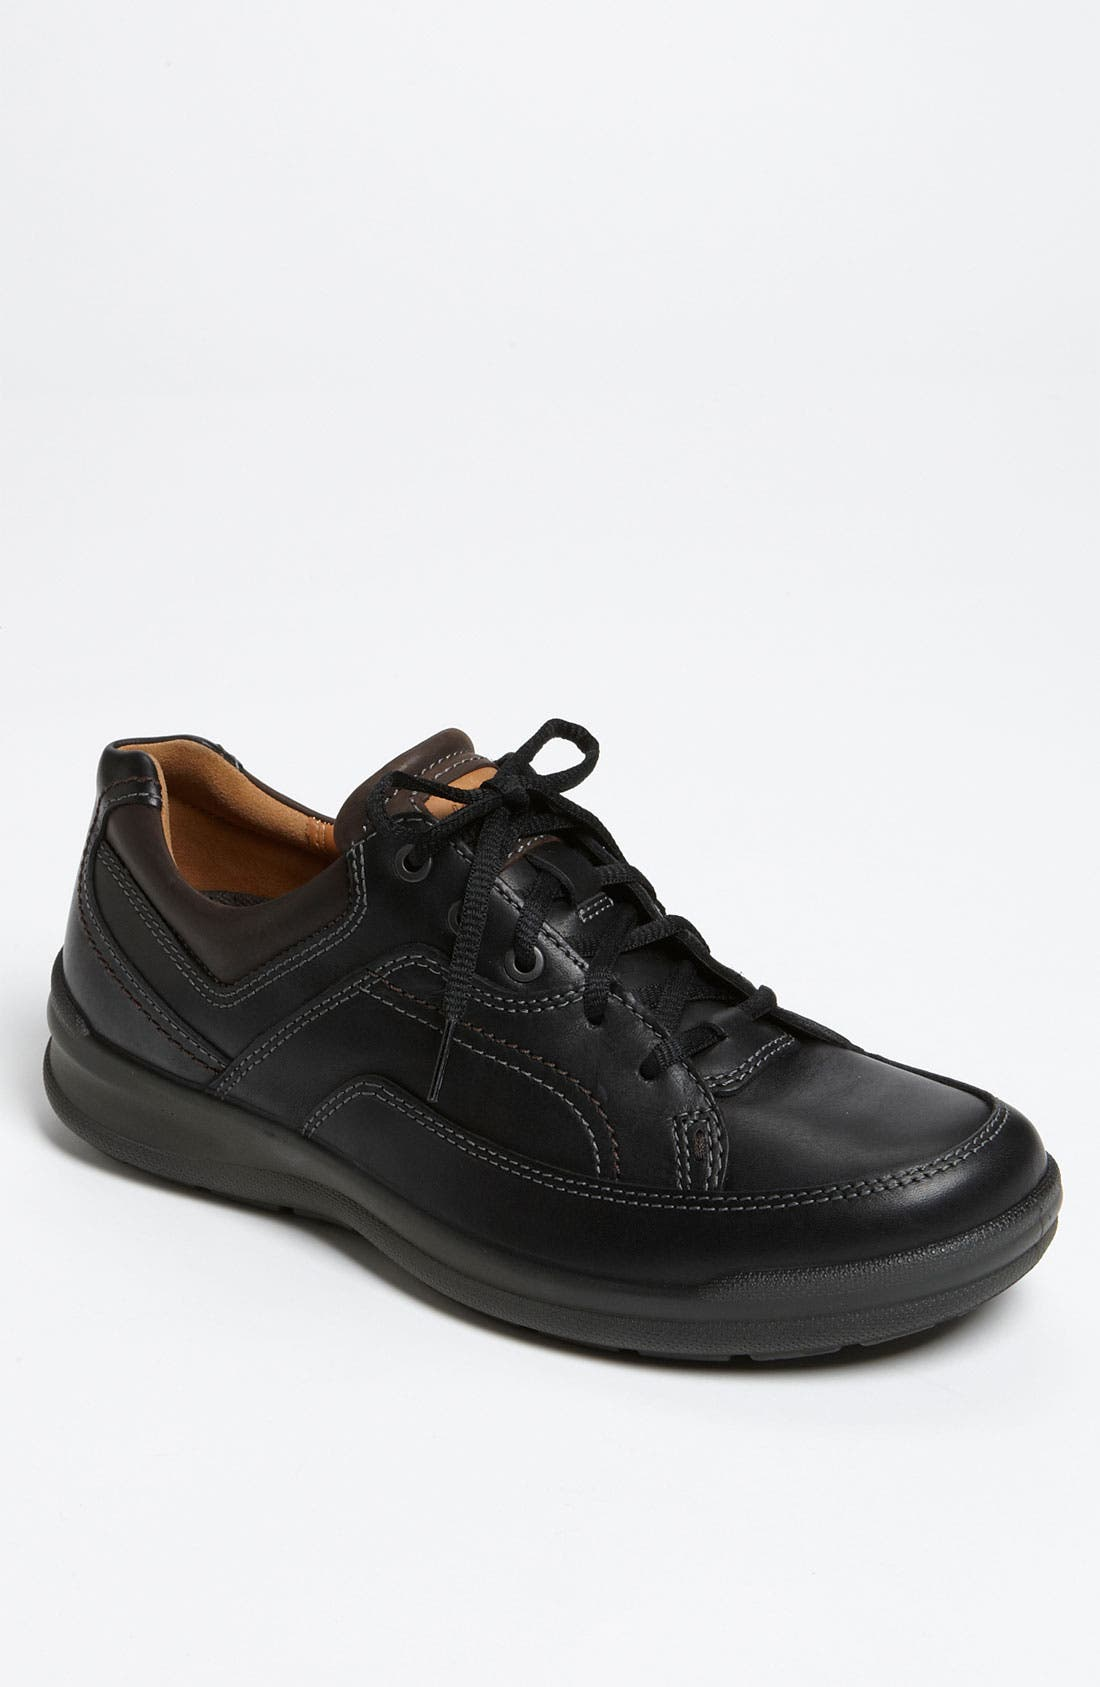 Alternate Image 1 Selected - ECCO 'Remote' Lace-Up Oxford